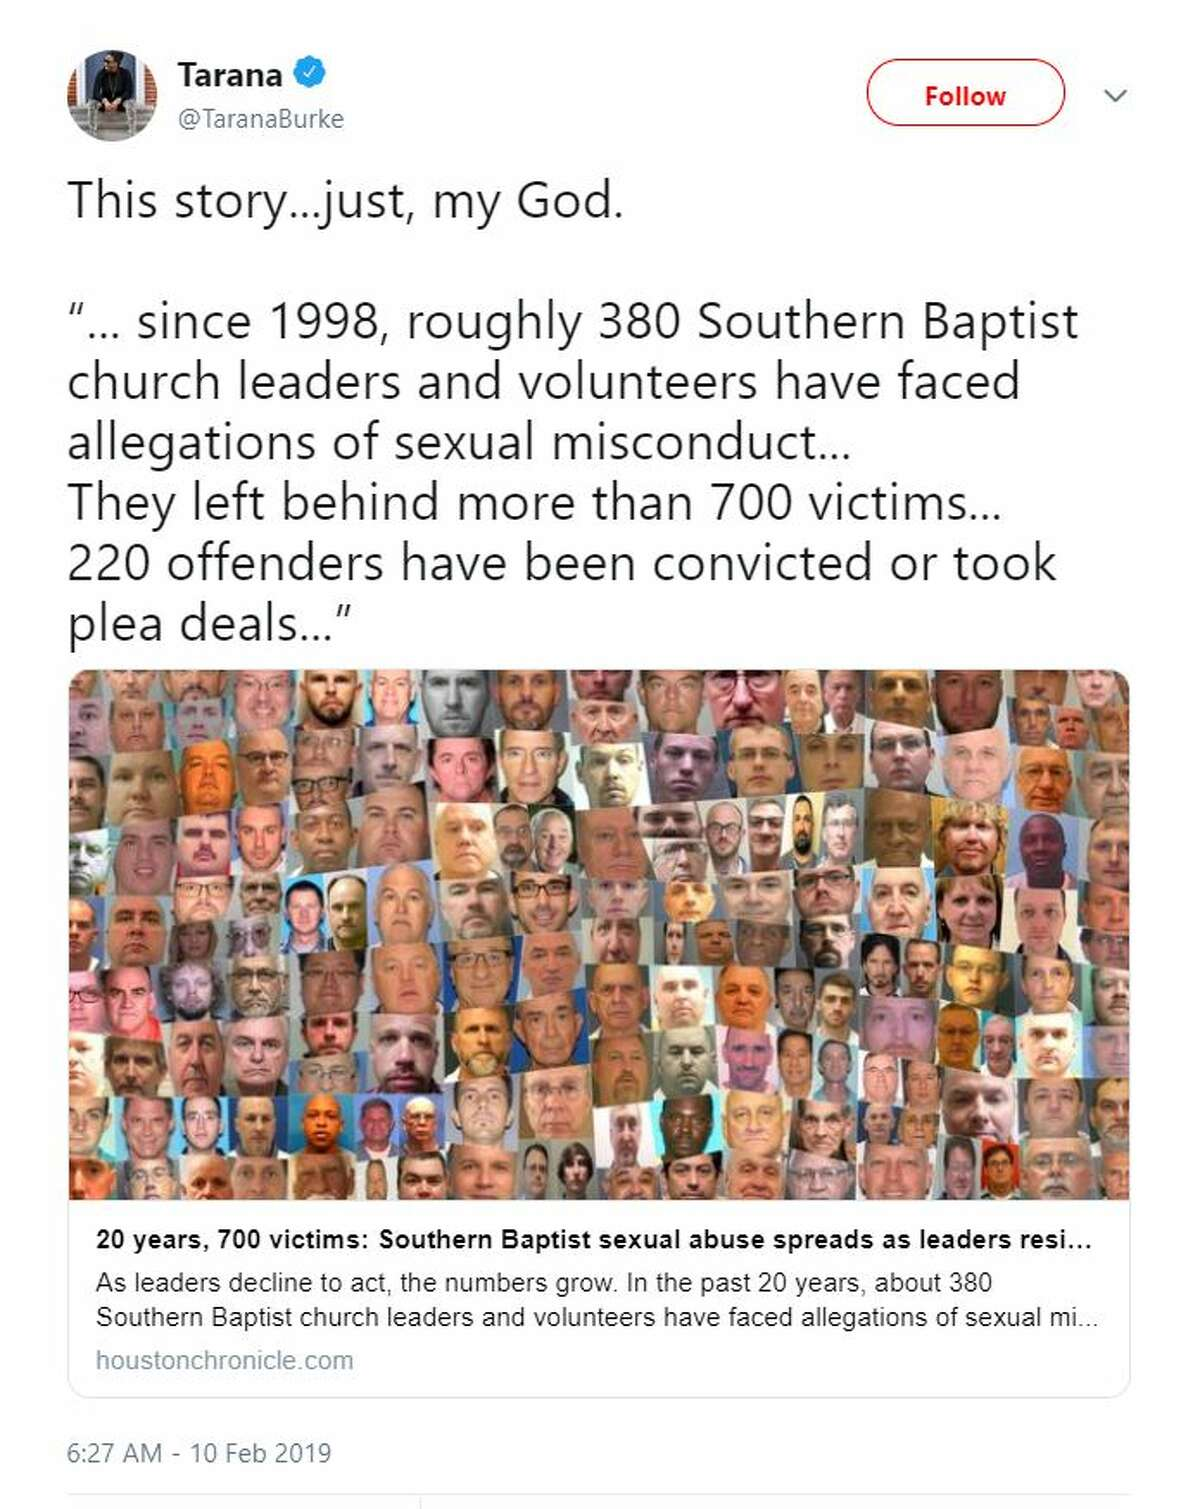 """""""This story...just, my God. '... since 1998, roughly 380 Southern Baptist church leaders and volunteers have faced allegations of sexual misconduct... They left behind more than 700 victims... 220 offenders have been convicted or took plea deals...'"""" - @TaranaBurke"""